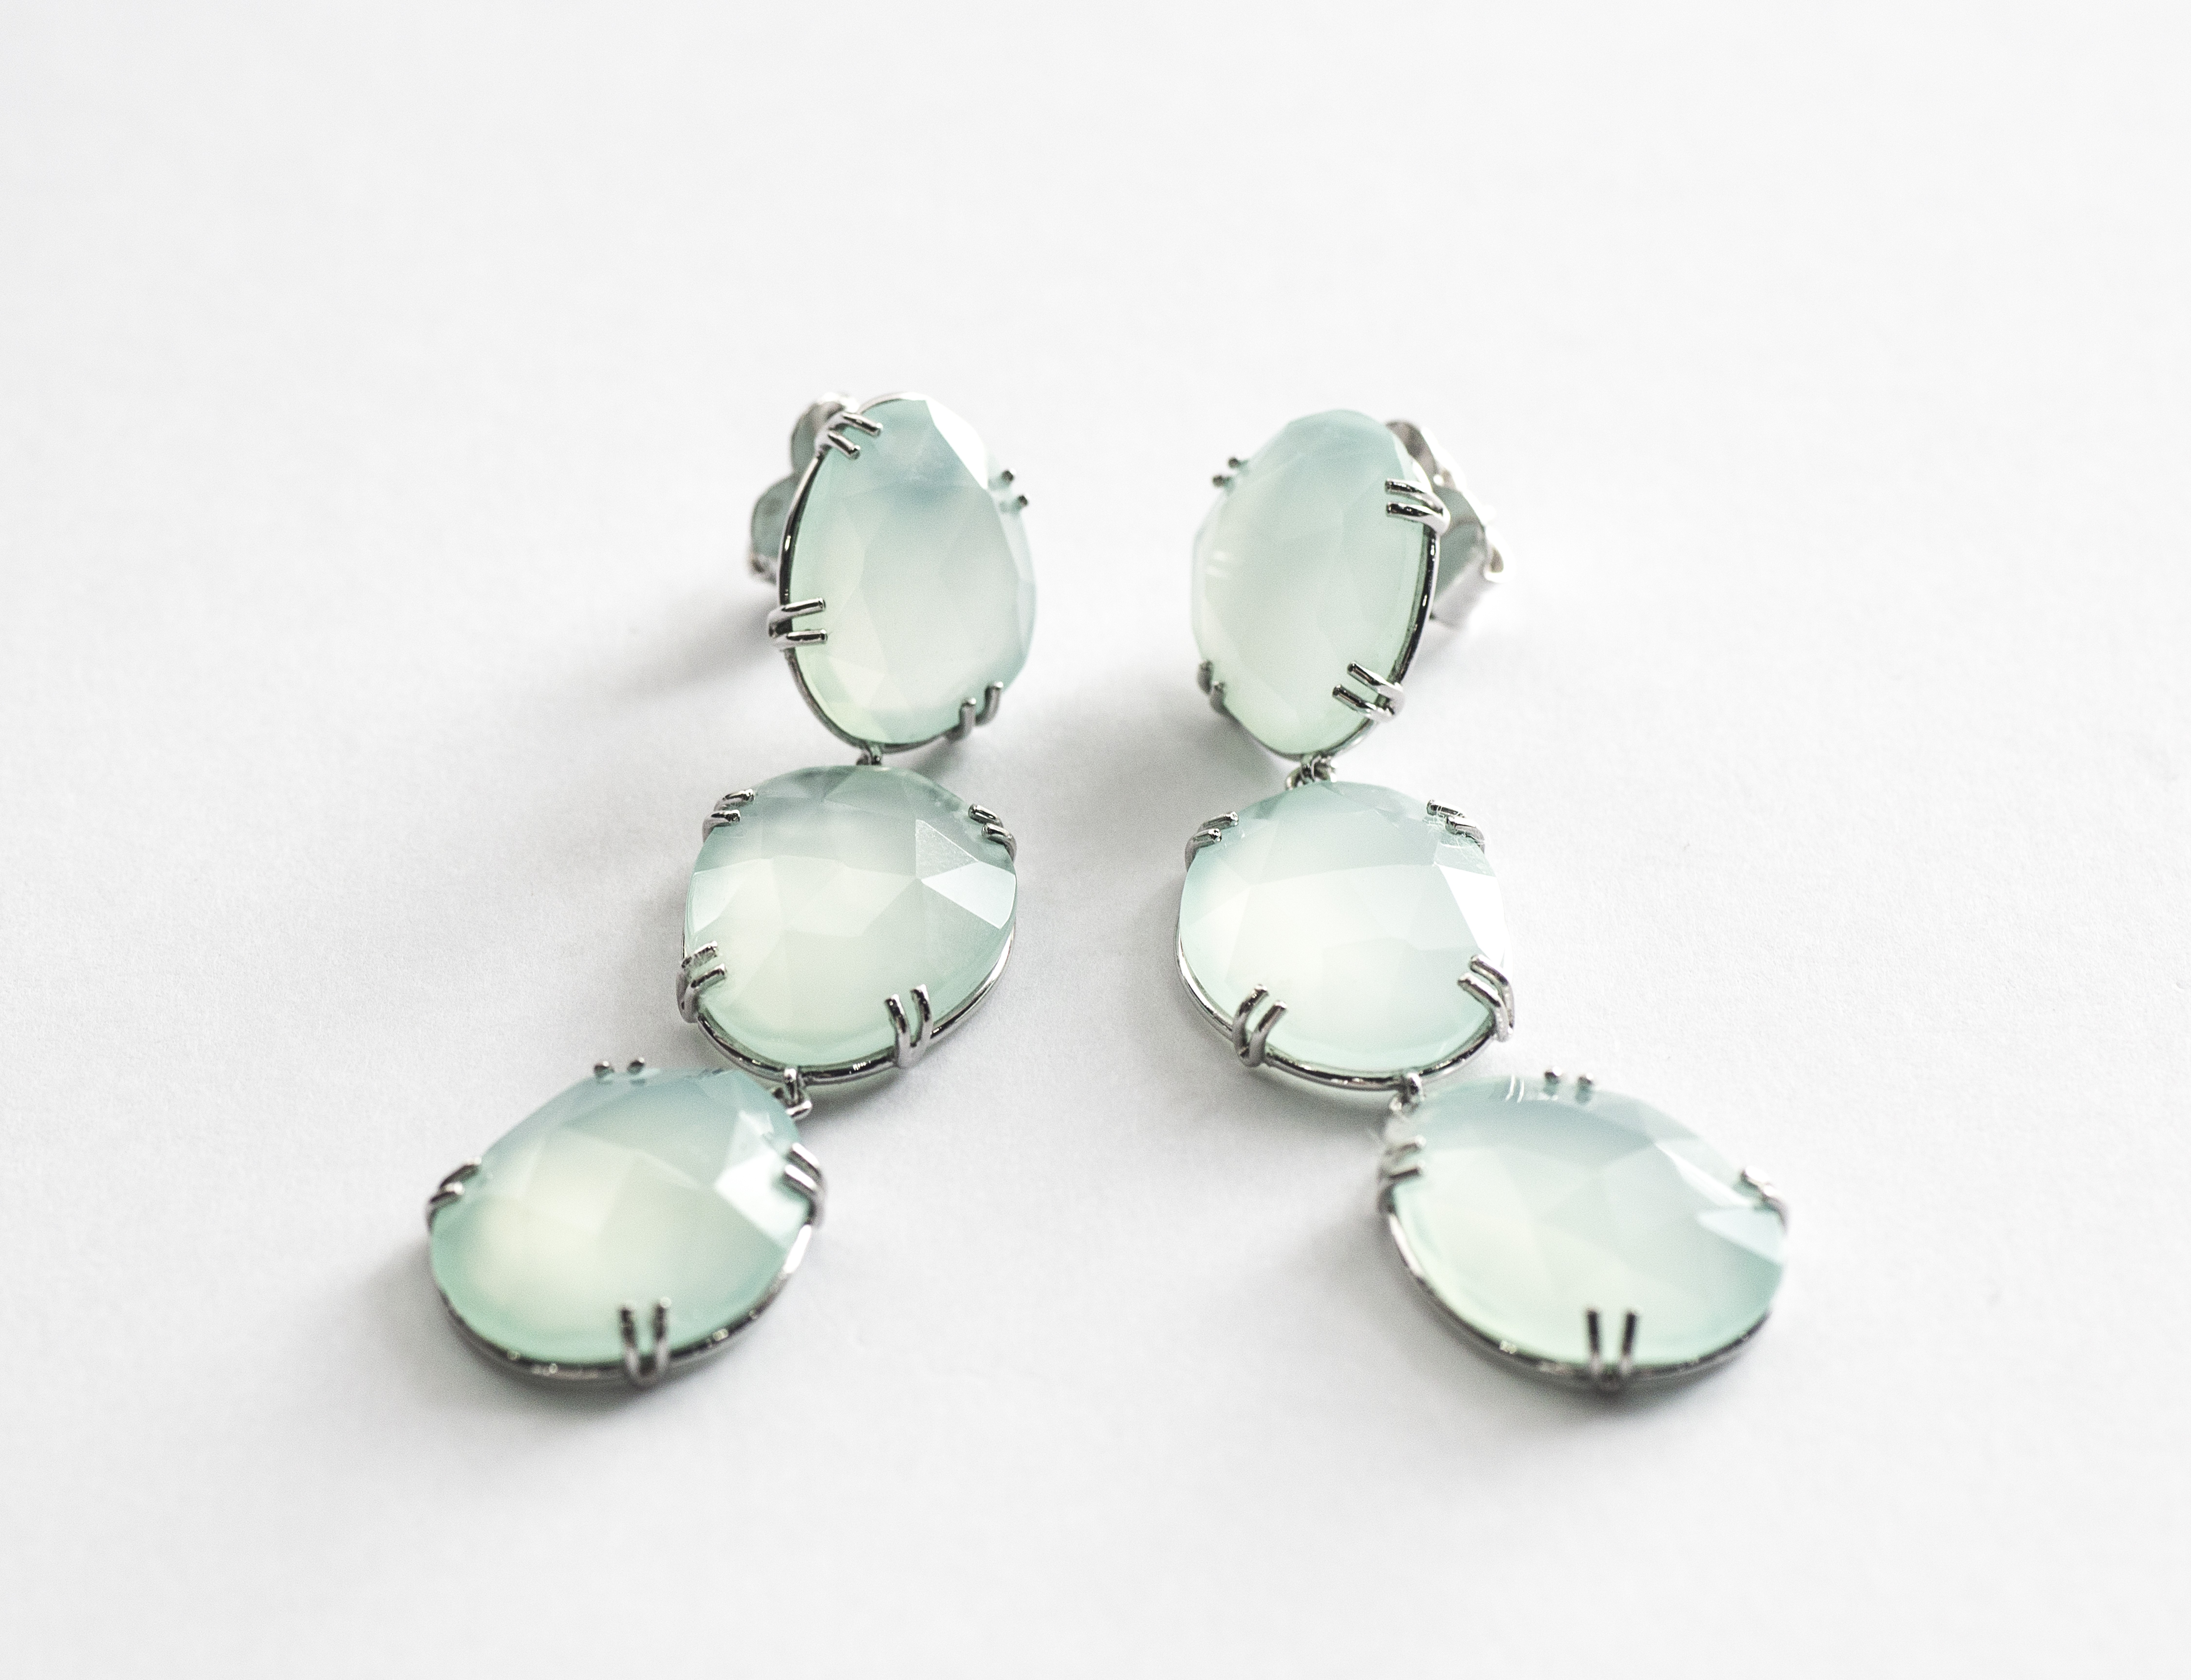 Silver earrings with Calcedony